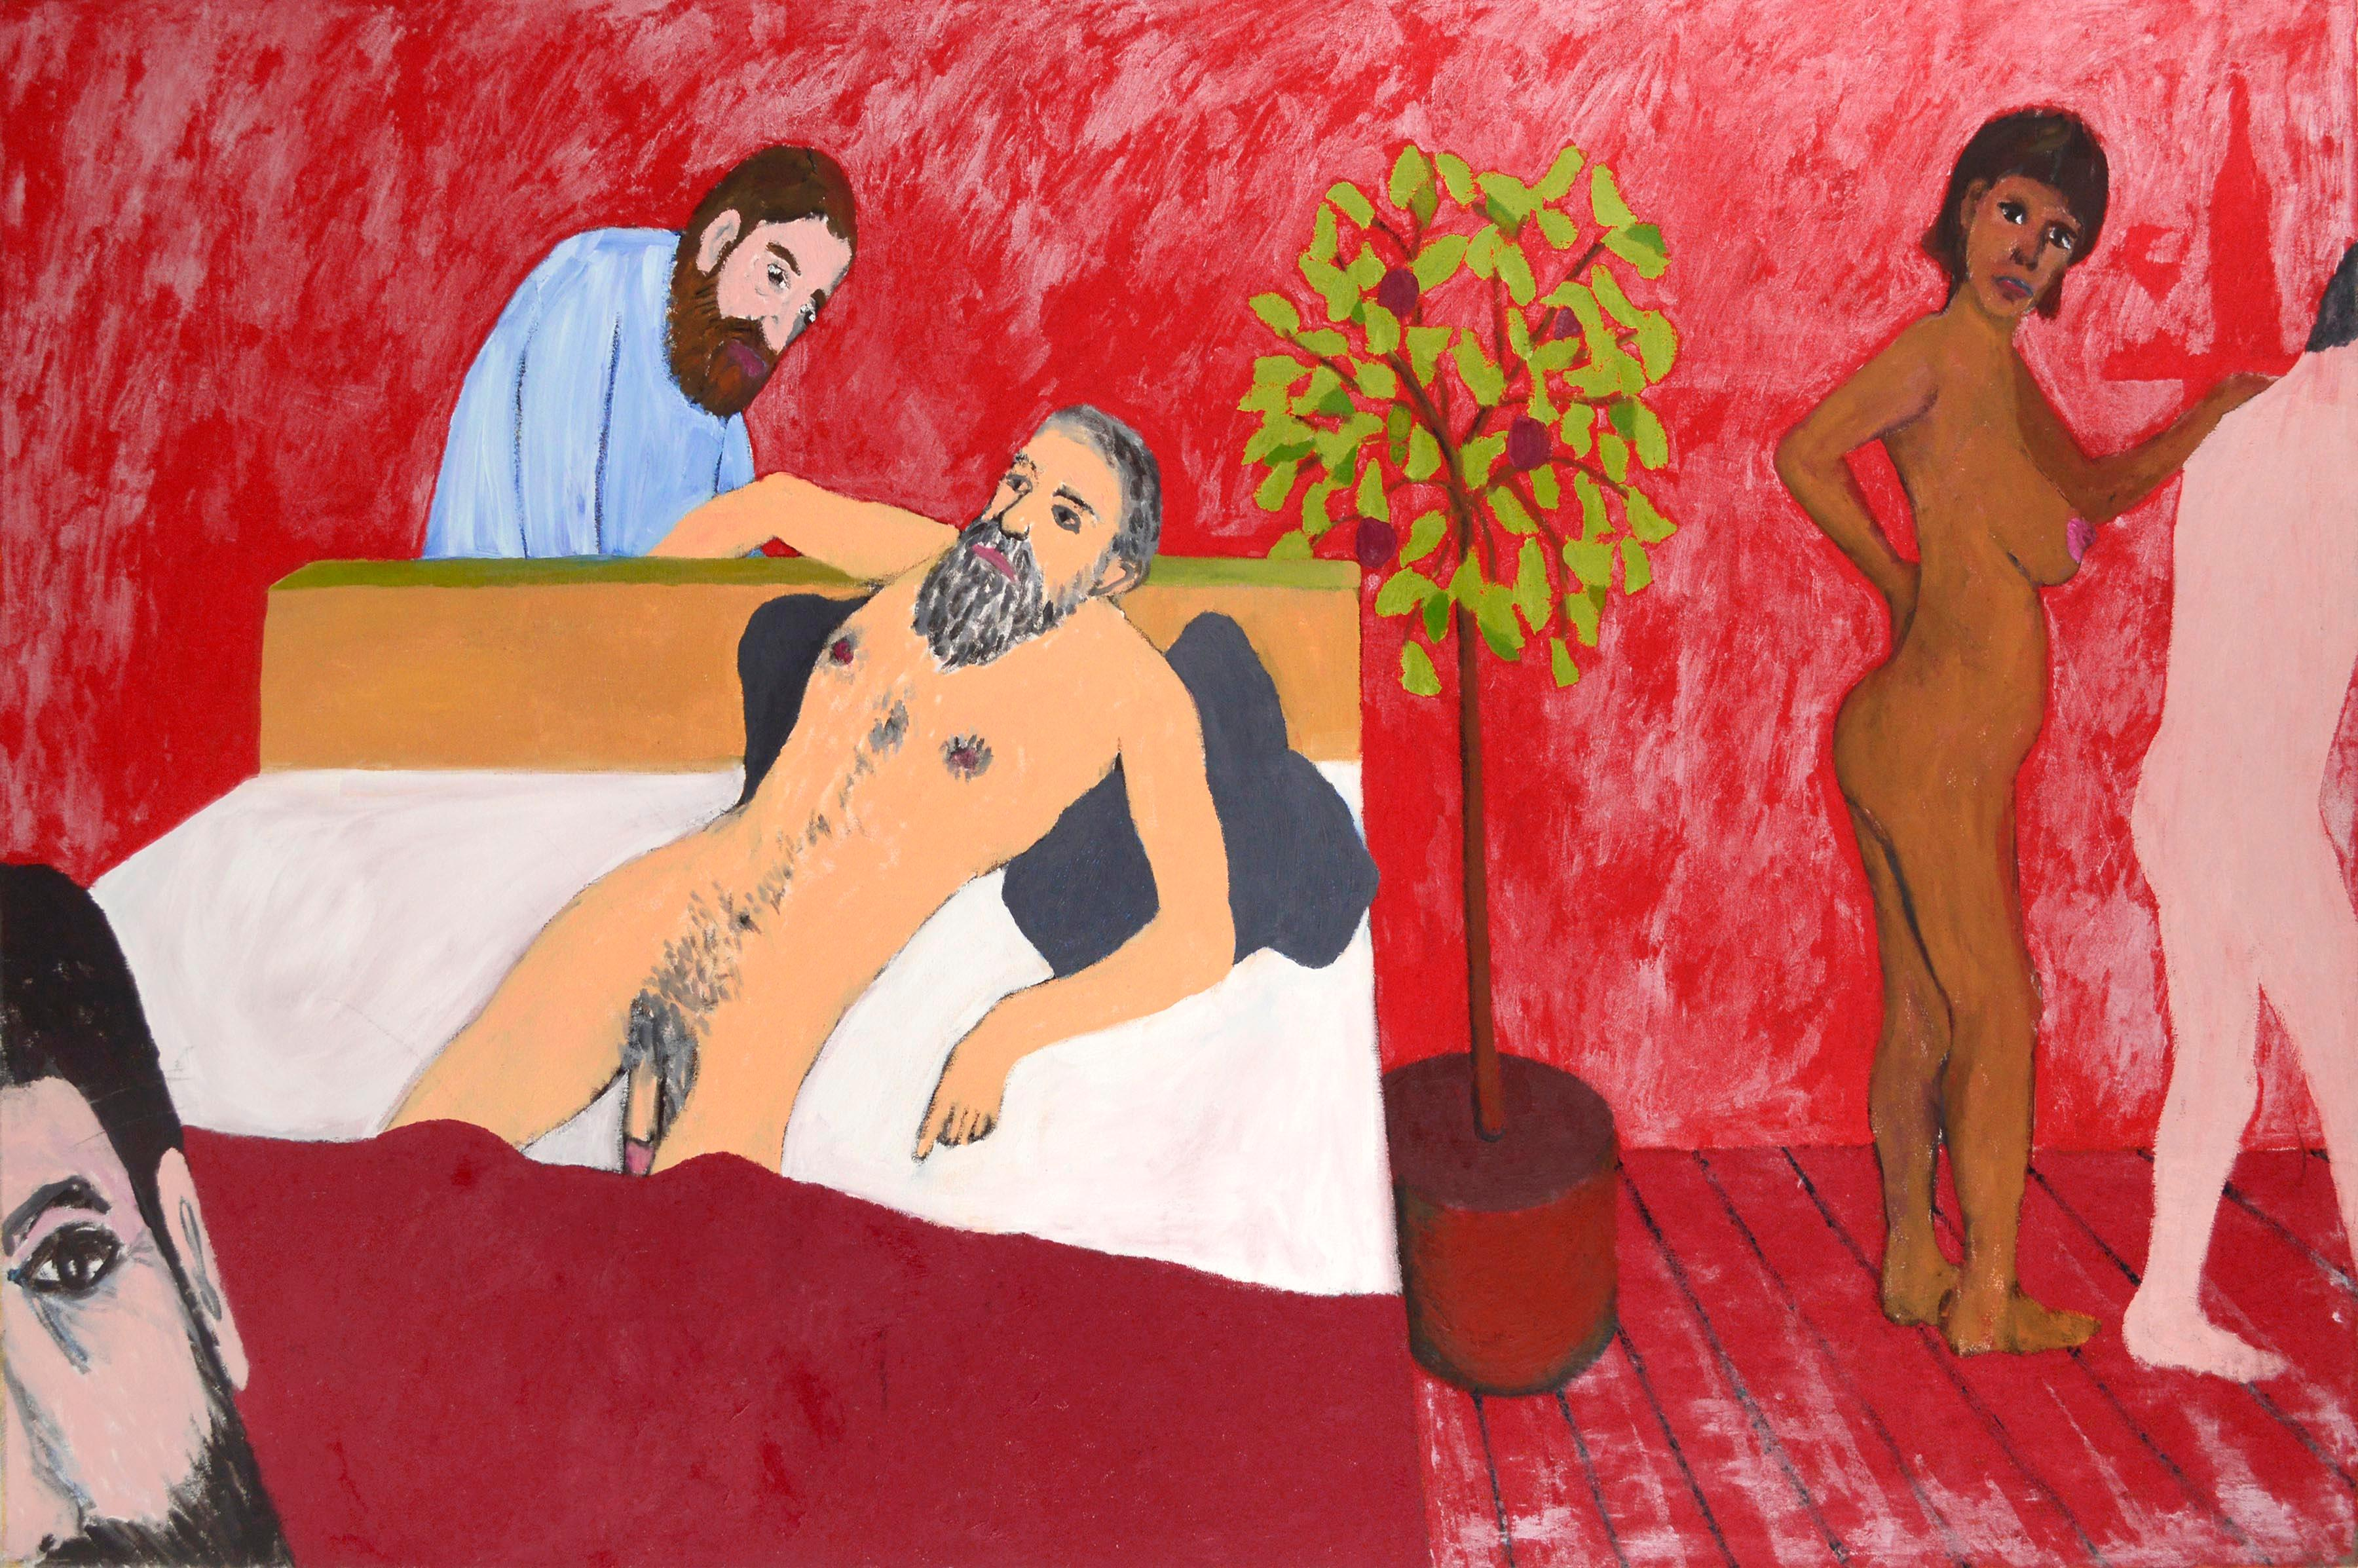 Reclining Nude with Tree - Figurative Interior Scene in Red Room